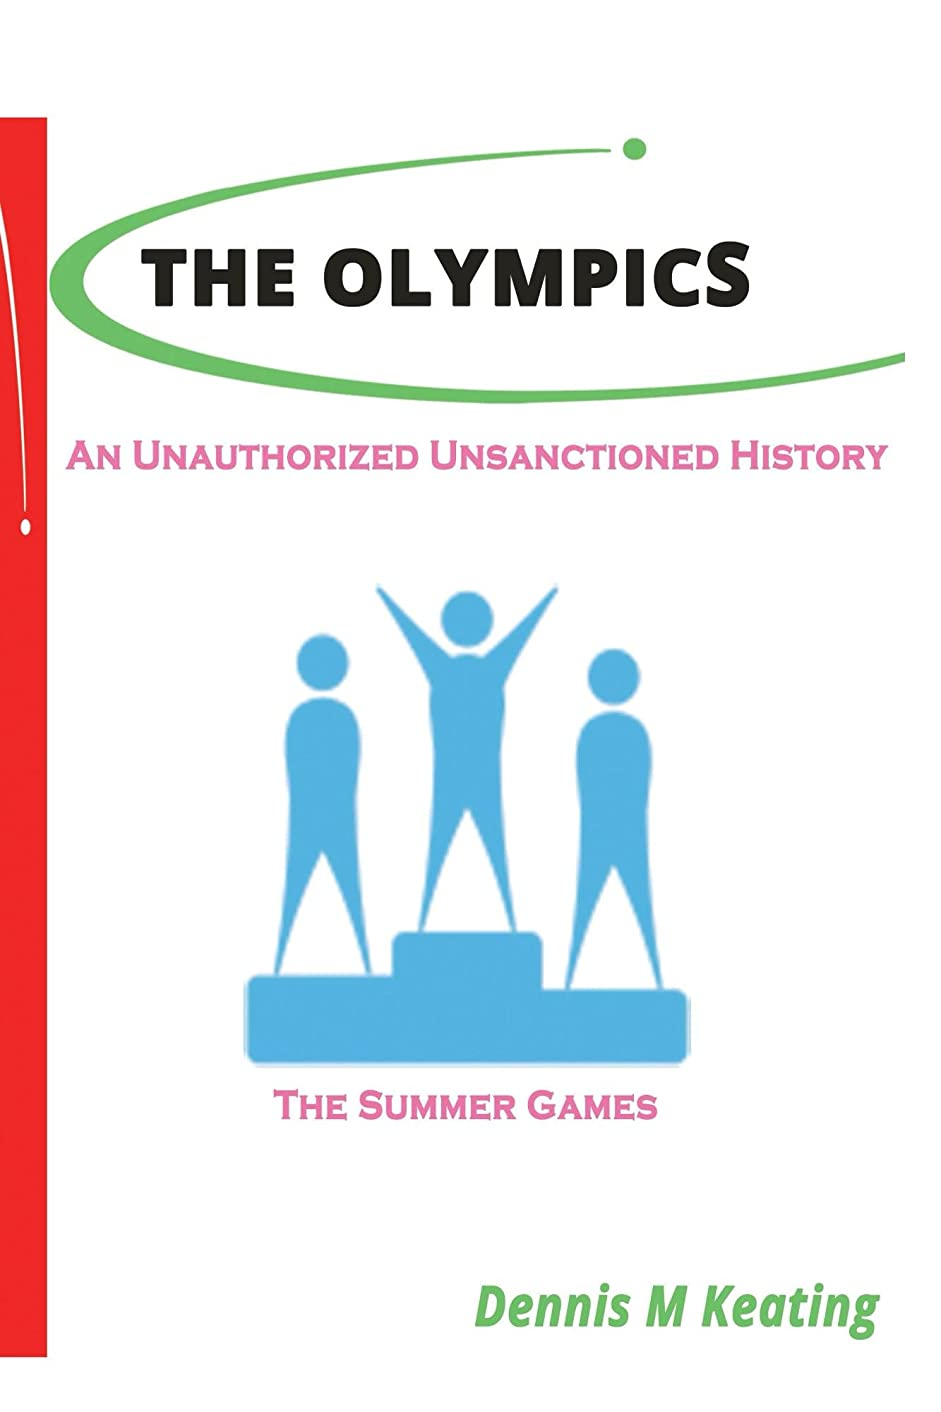 The Olympics: An Unauthorized Unsanctioned History